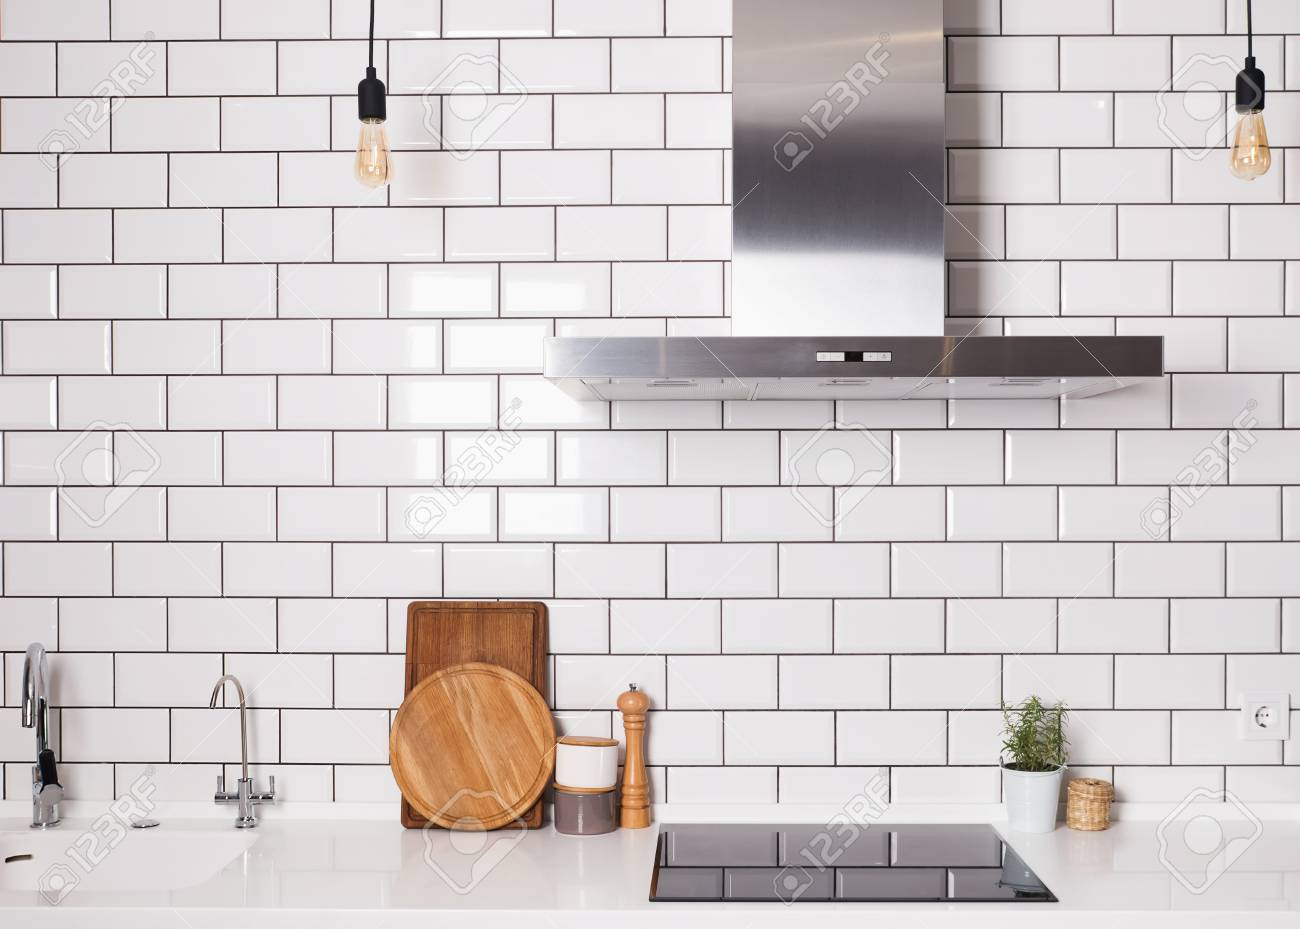 25 Best Kitchen Backsplash Ideas Tile Designs For Kitchen White Brick Tiles In Kitchen